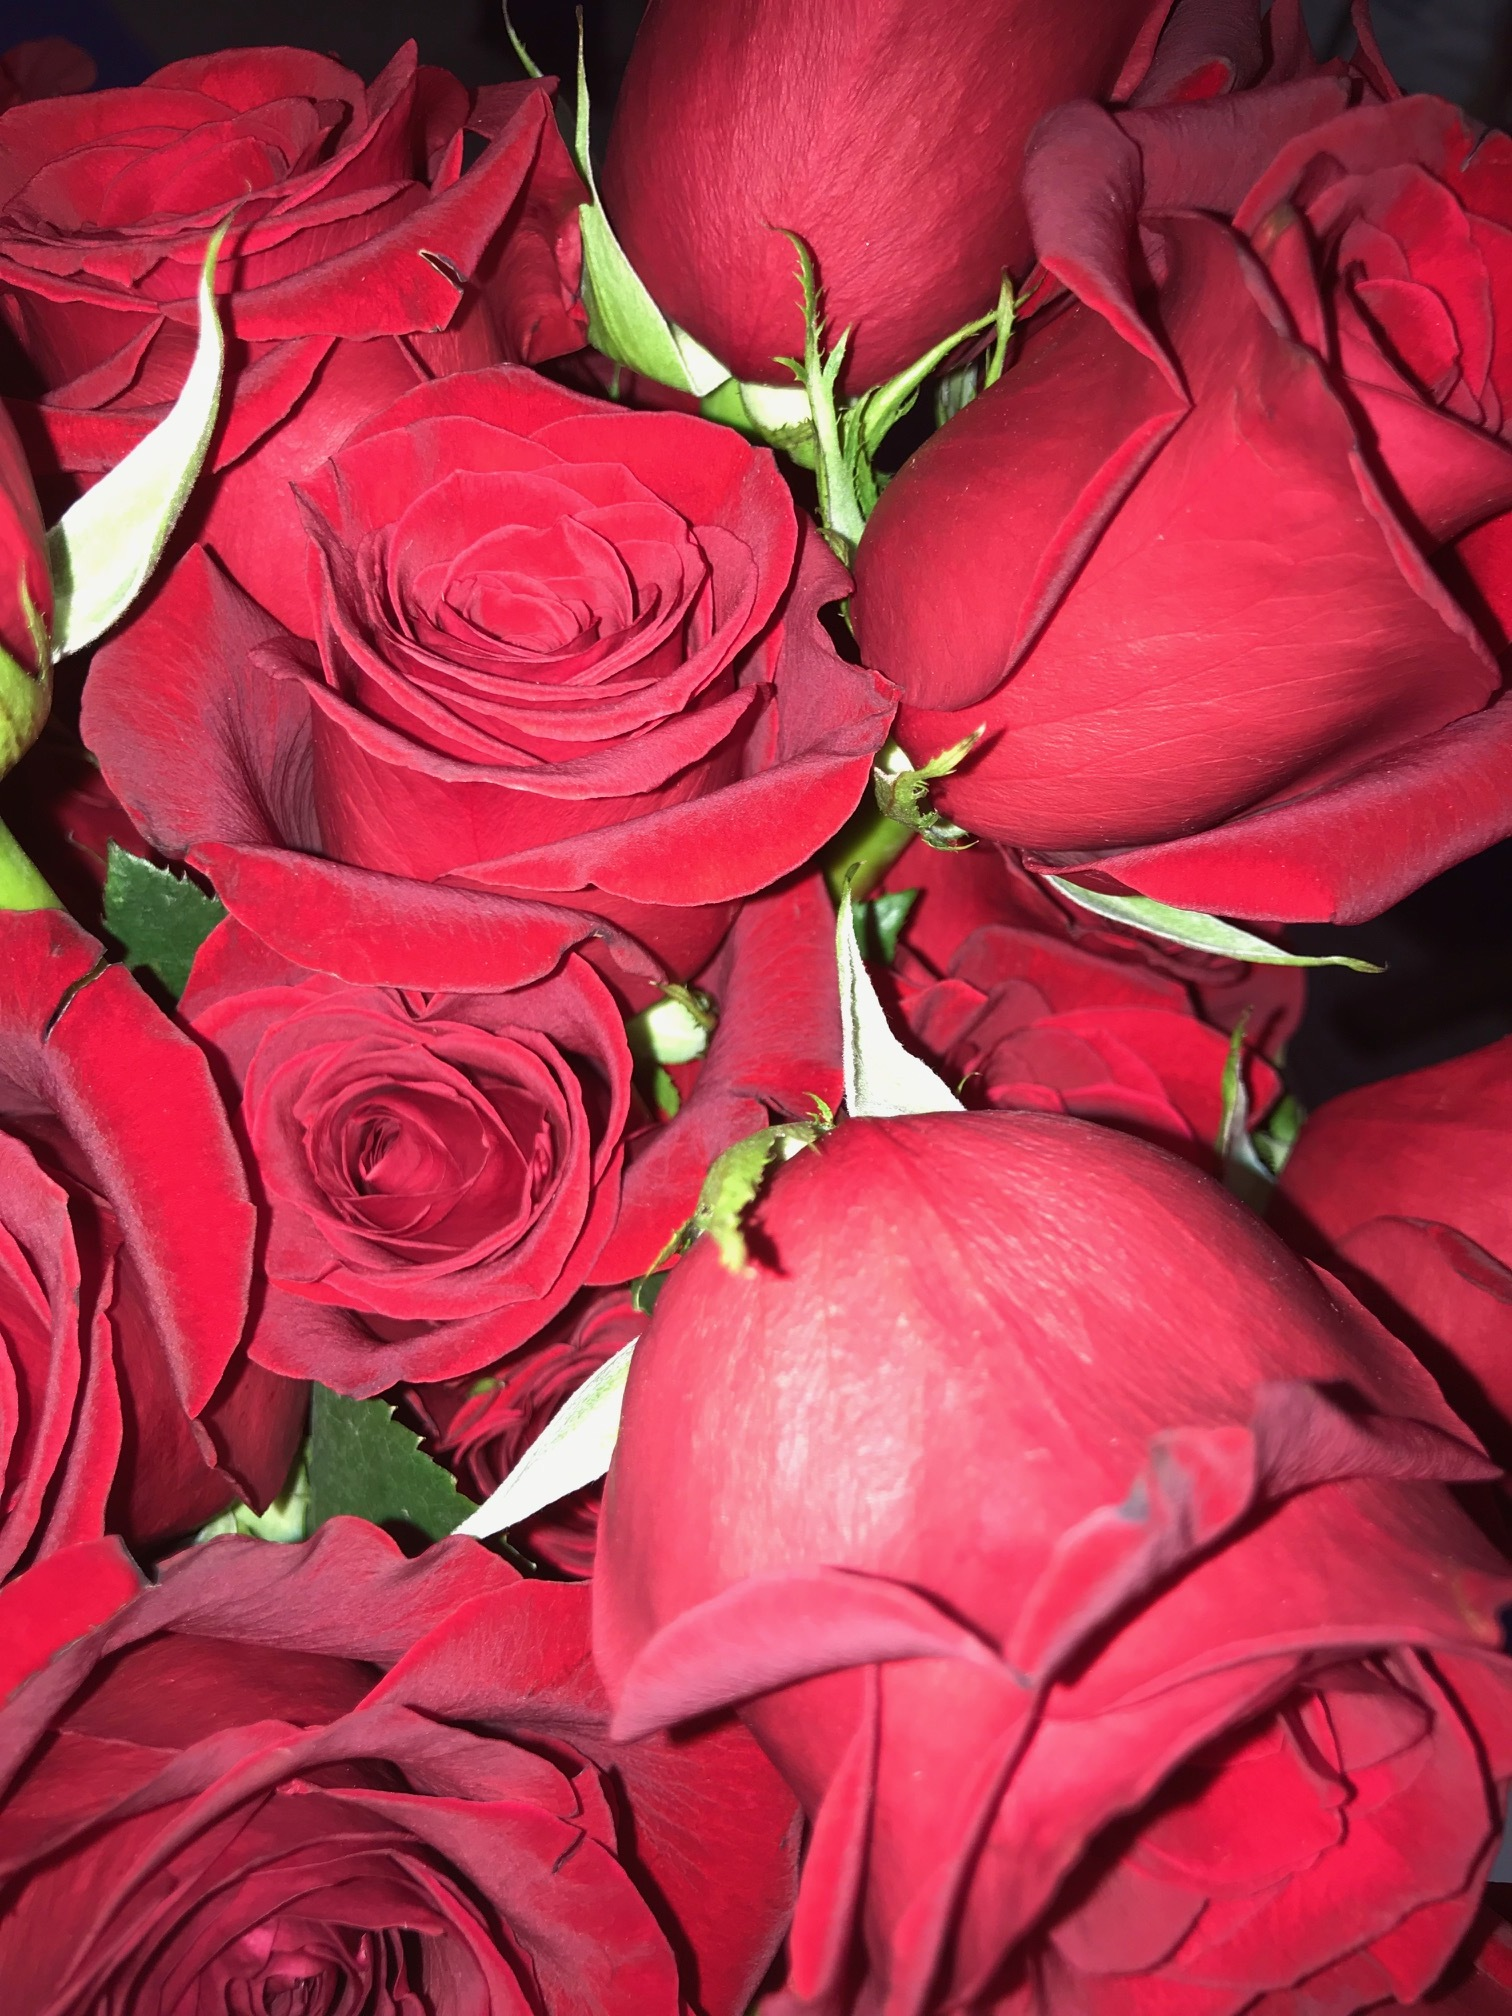 Want to profess your love to your favourite delegates? Stop by the 5th floor to send a rose with a personal note attached! Only $5 each!